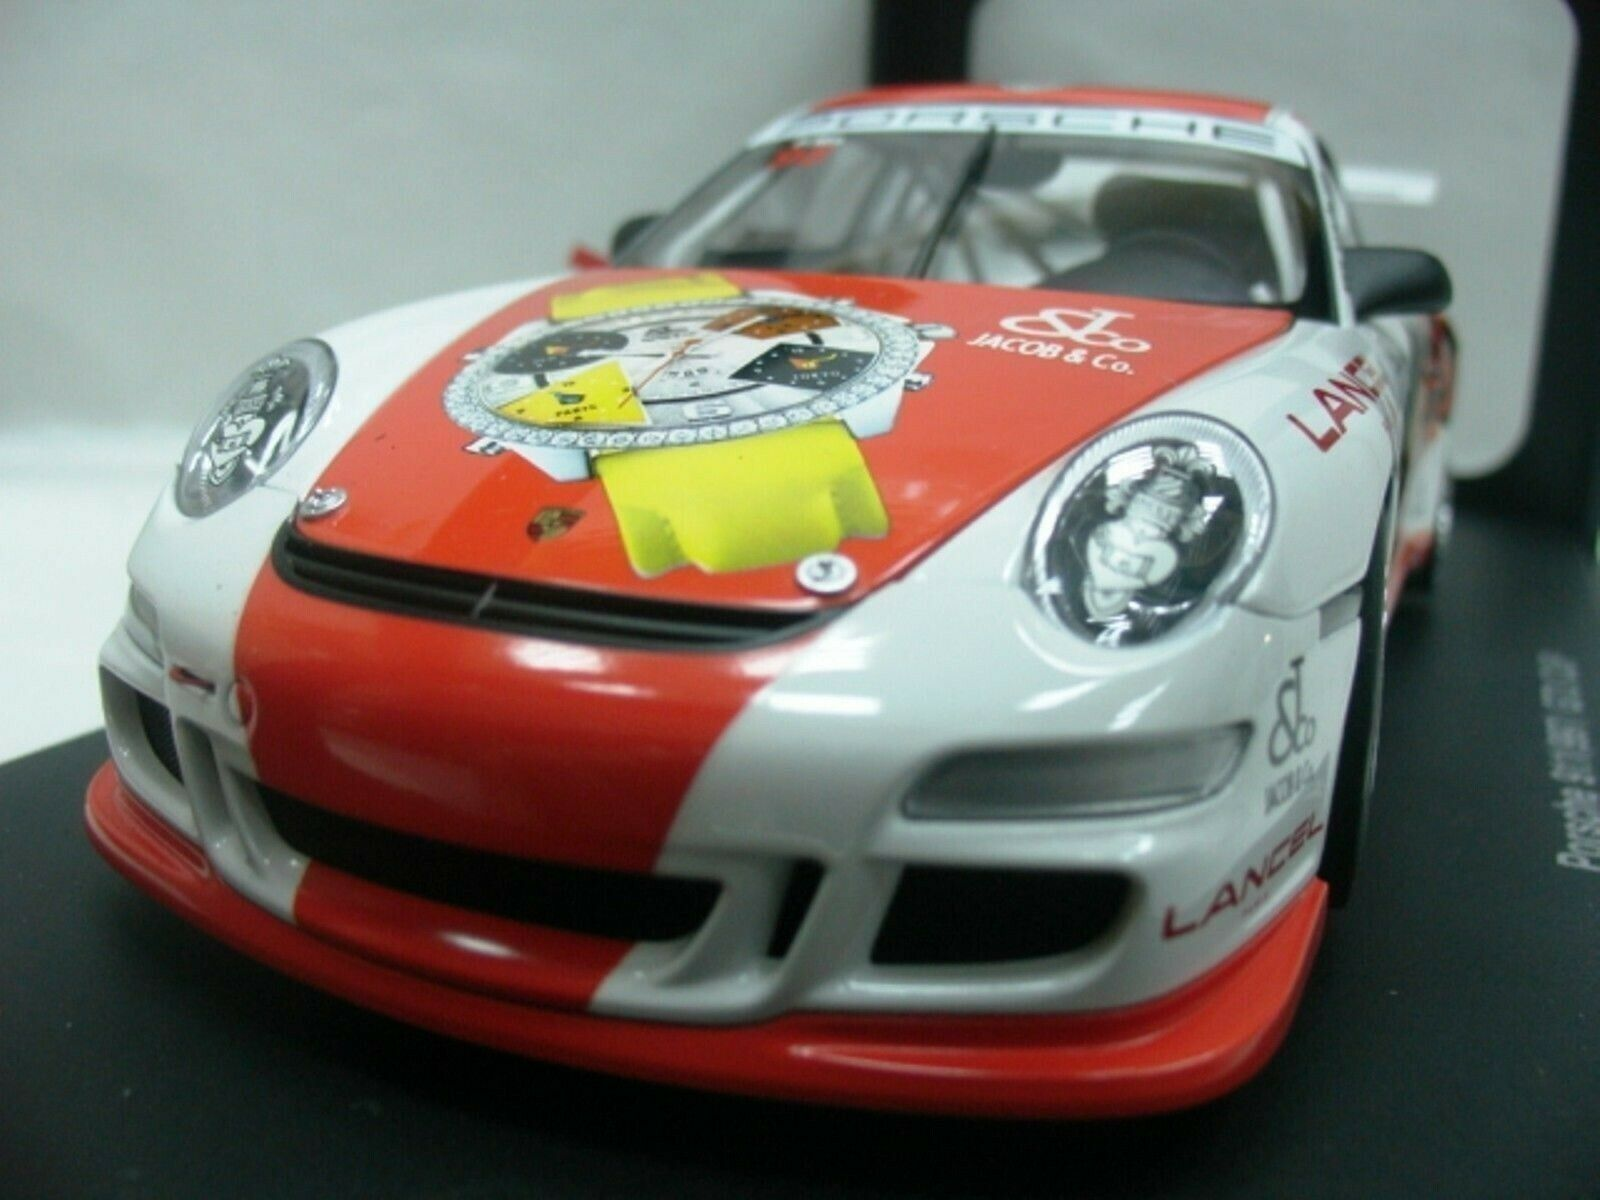 Wow extrêmement rare Porsche 997 911 GT3RS PH ma Zhuhai 2006 1 18 AUTO Art-996 GT2